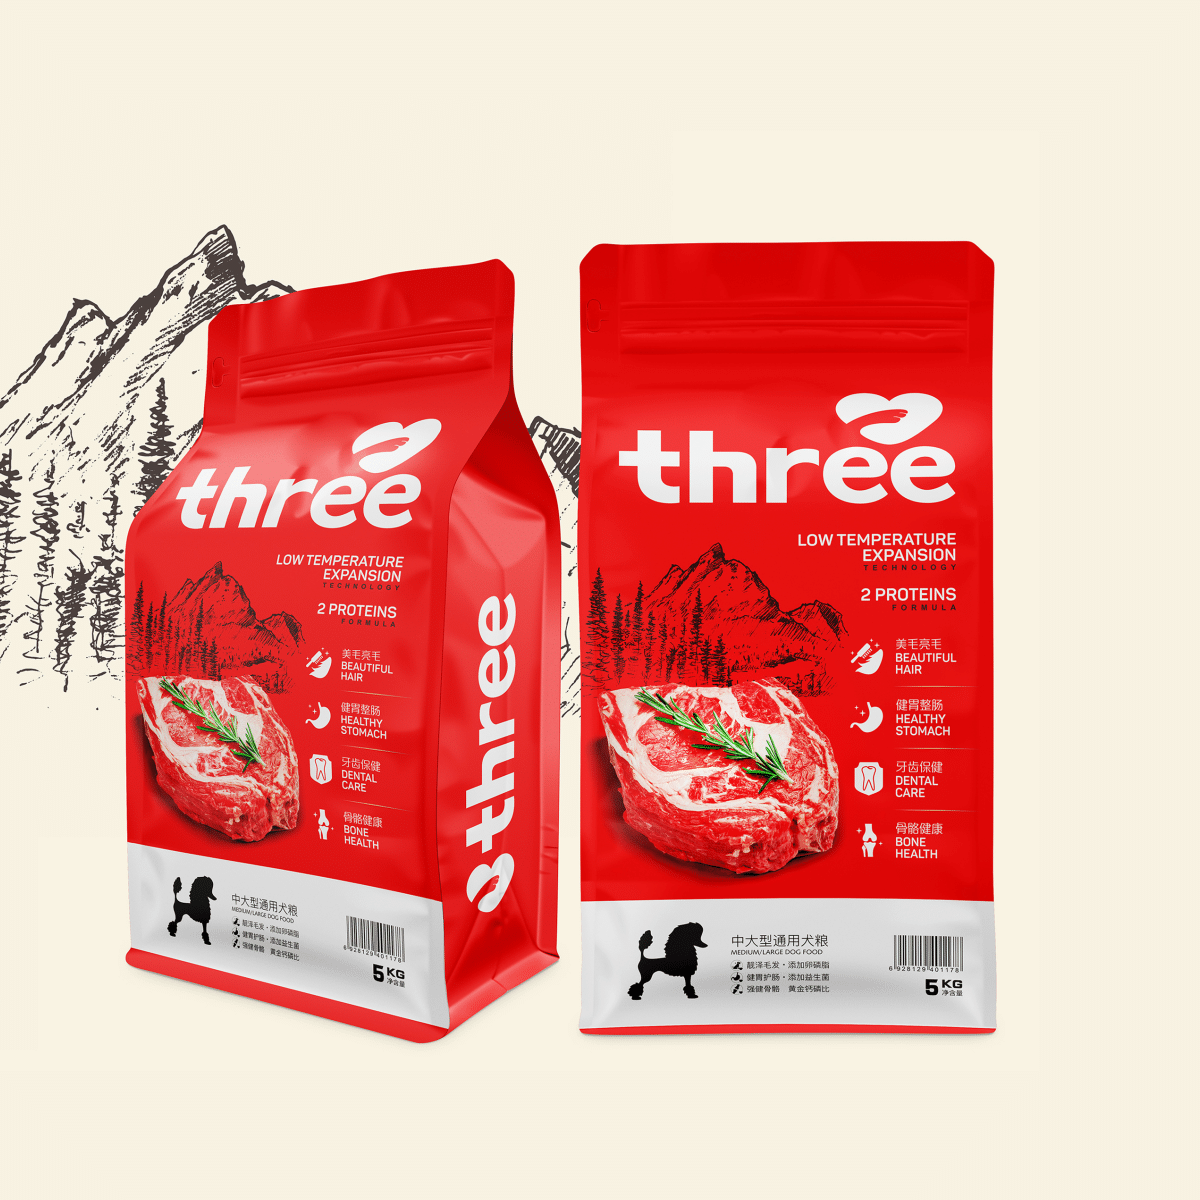 Packaging design company in Nigeria